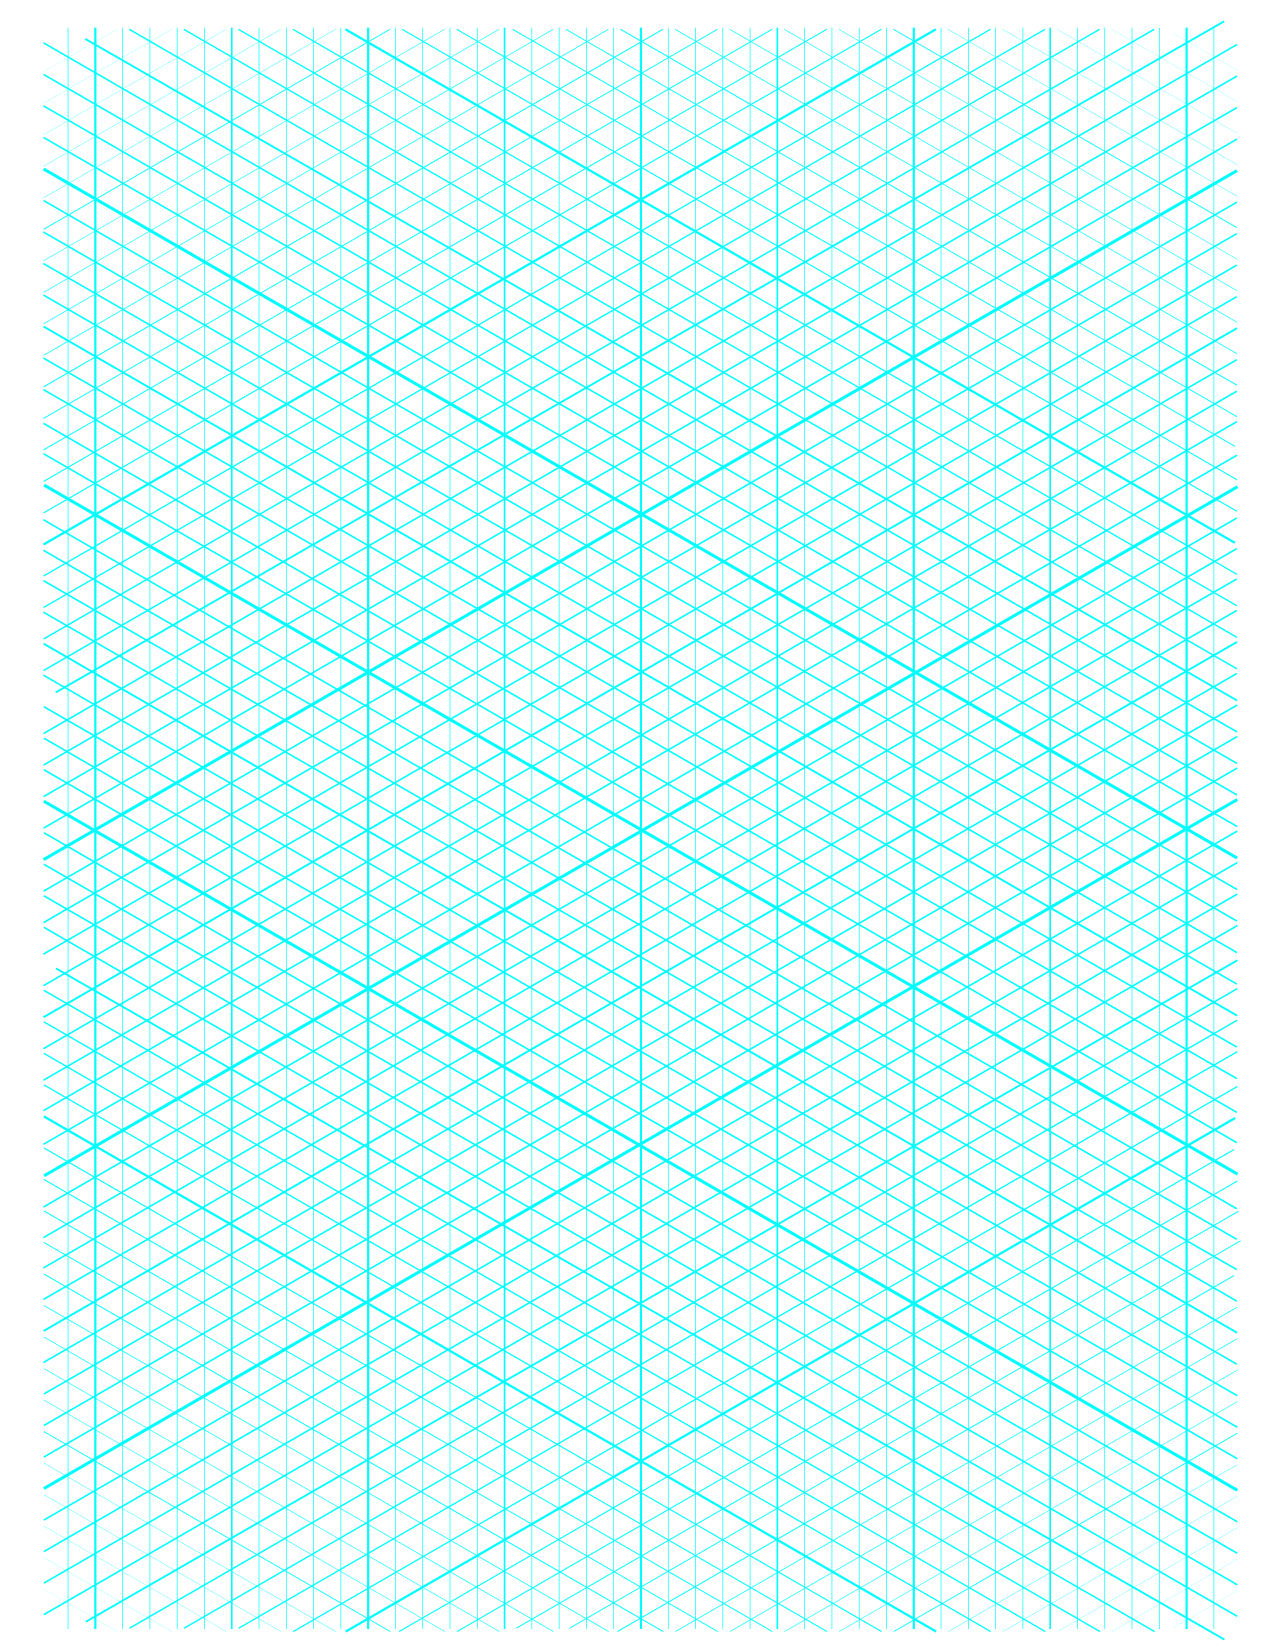 5 Free Isometric Graph Grid Paper Printable